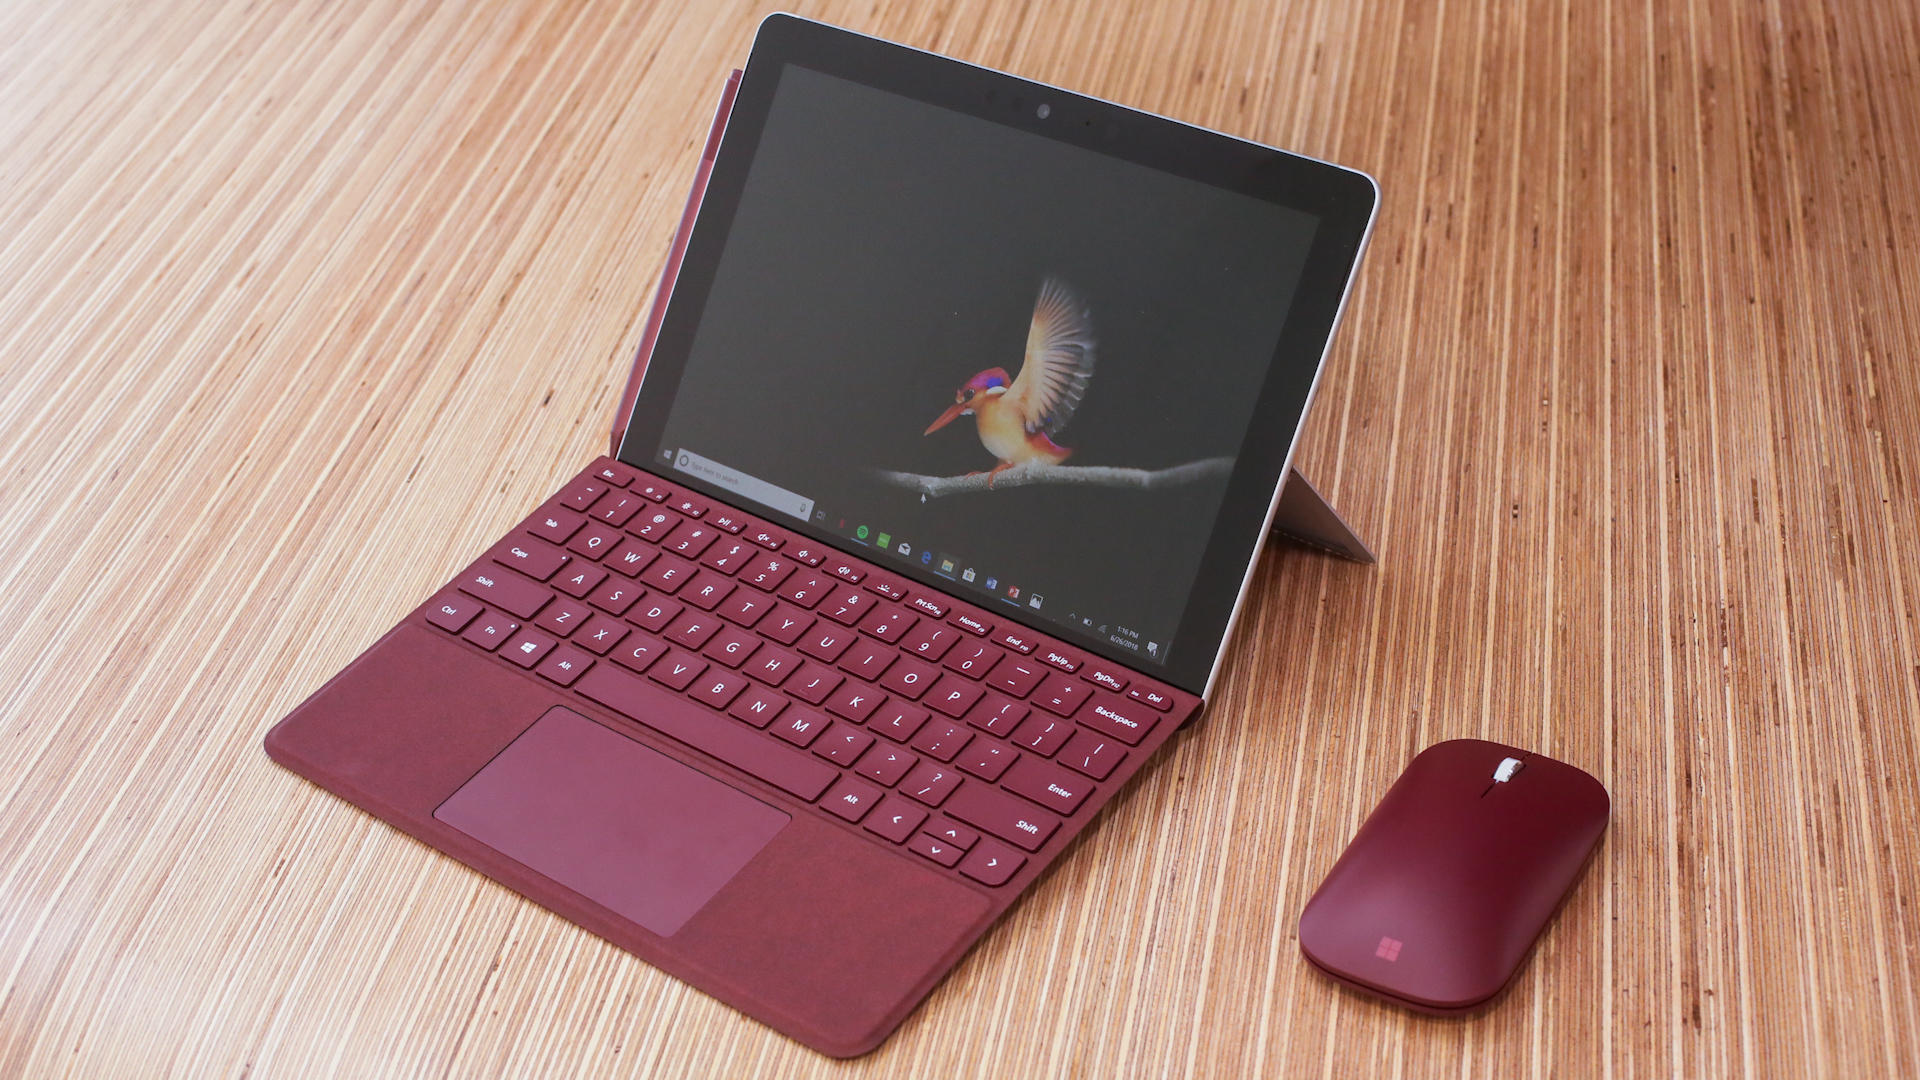 Video: The Surface Go shrinks Microsoft's iconic tablet